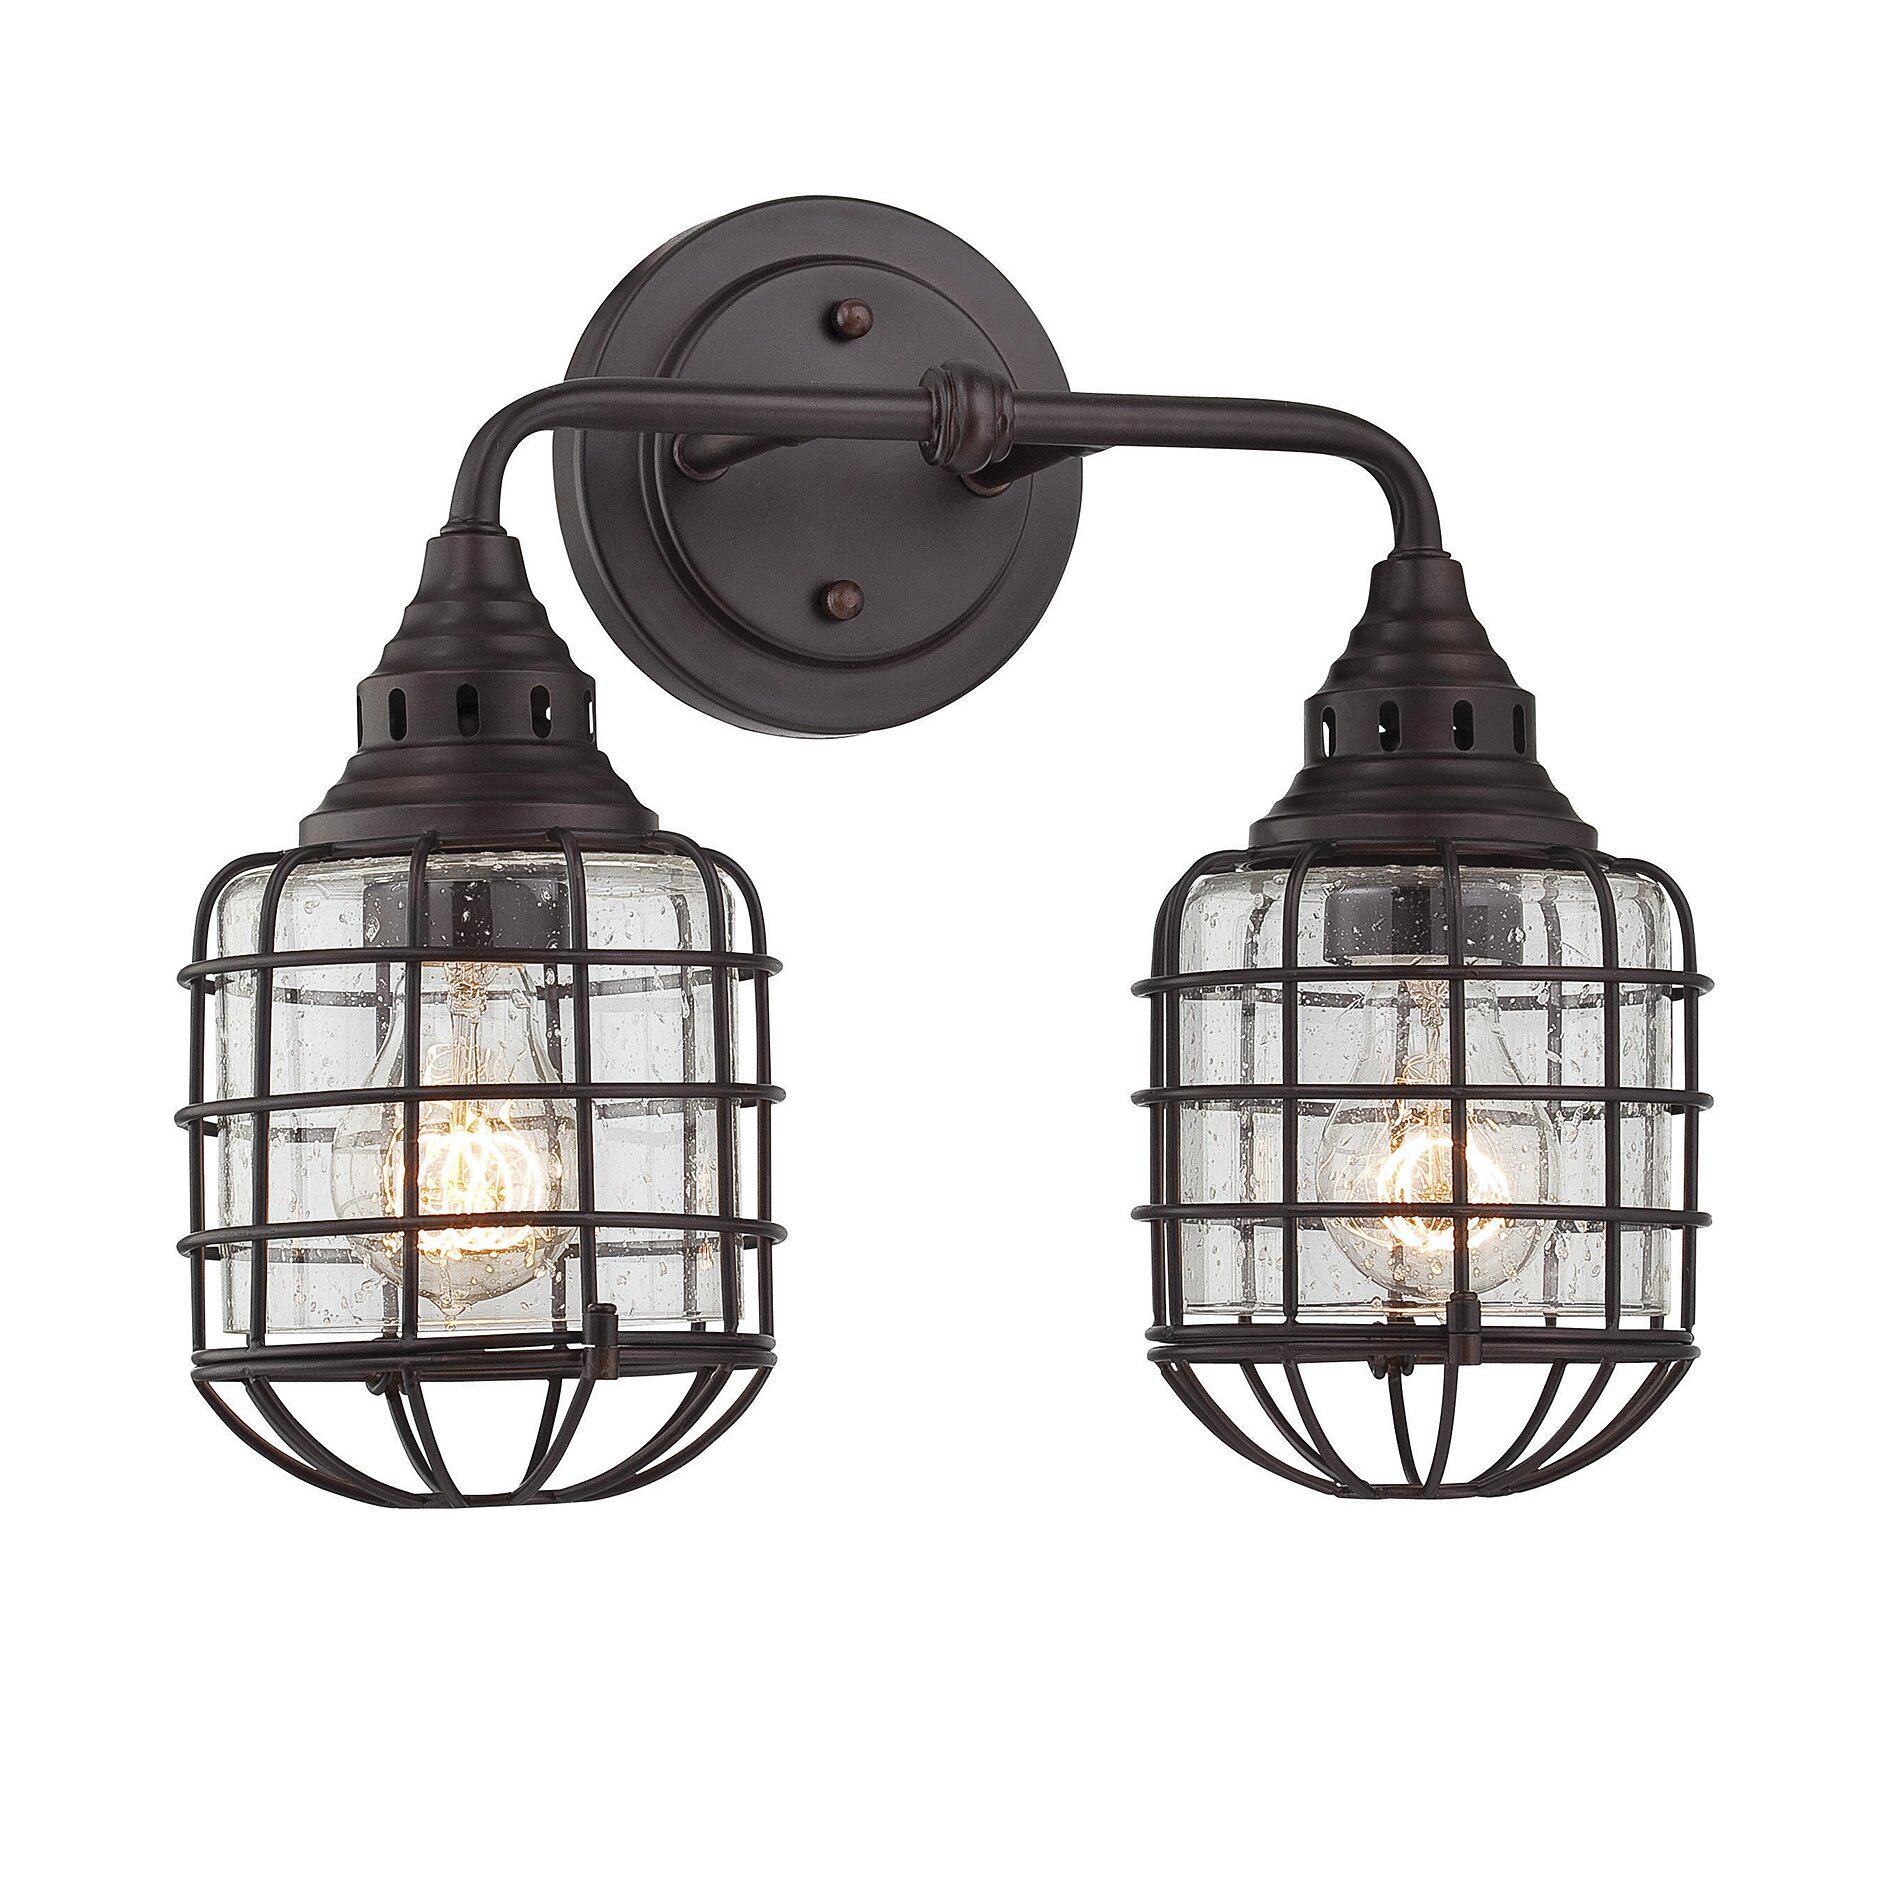 Savoy house connell 2 light vanity light reviews wayfair for Savoy house